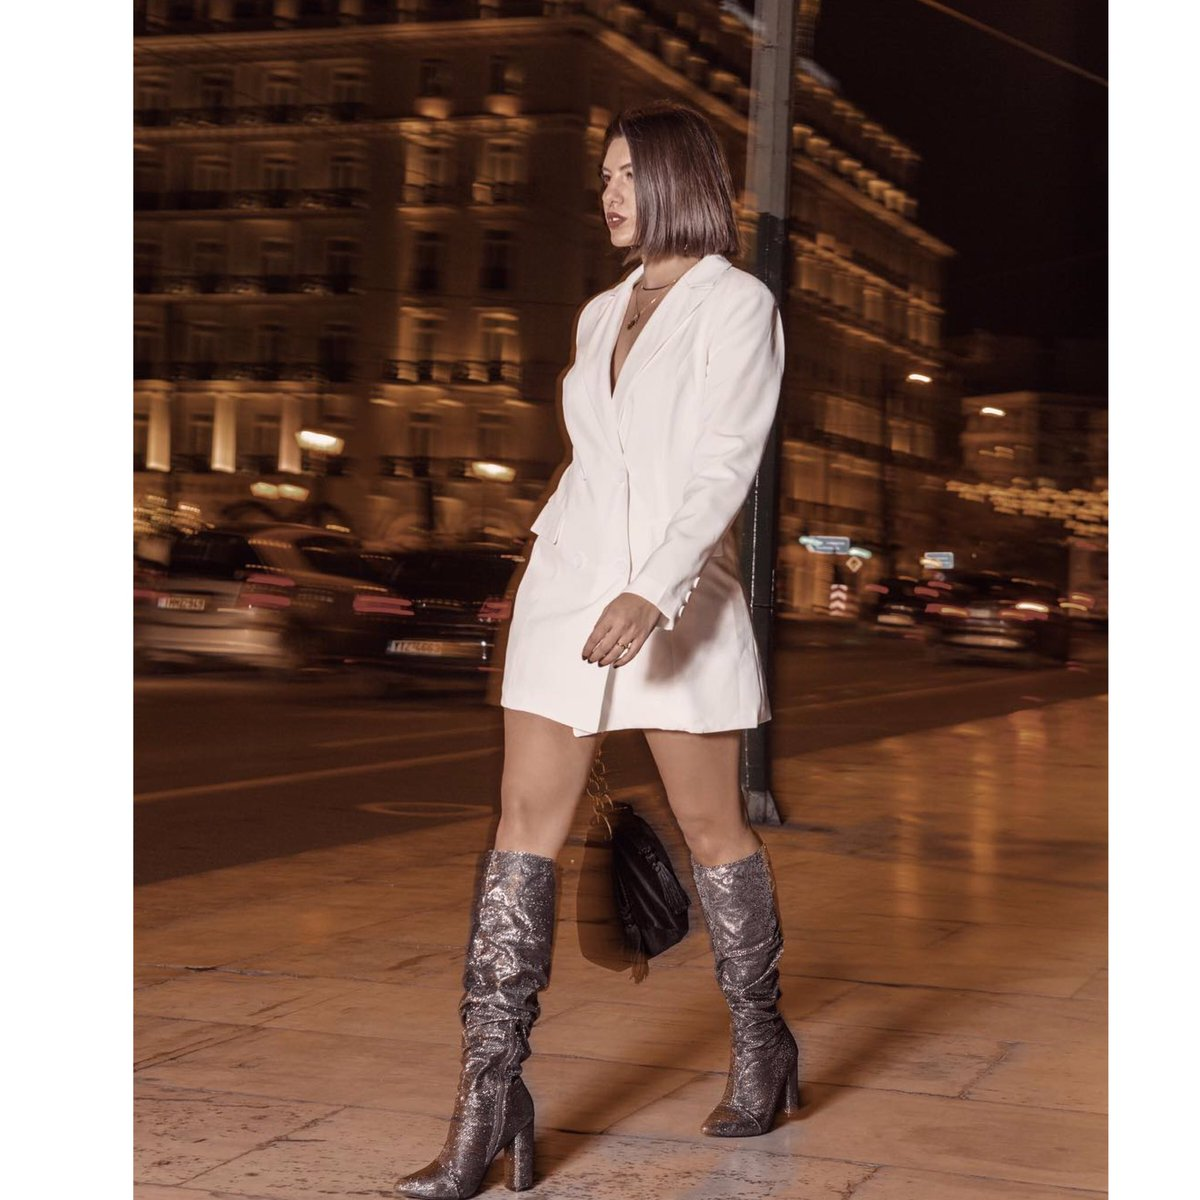 c8170f3b39 ... way to wear the  MIGATO ST1616 pewter metallic boots for tonight s  drinks!  boots  migatolovers  Fashionista Shop online ▻ http   bit.ly ST1616-L17  ...